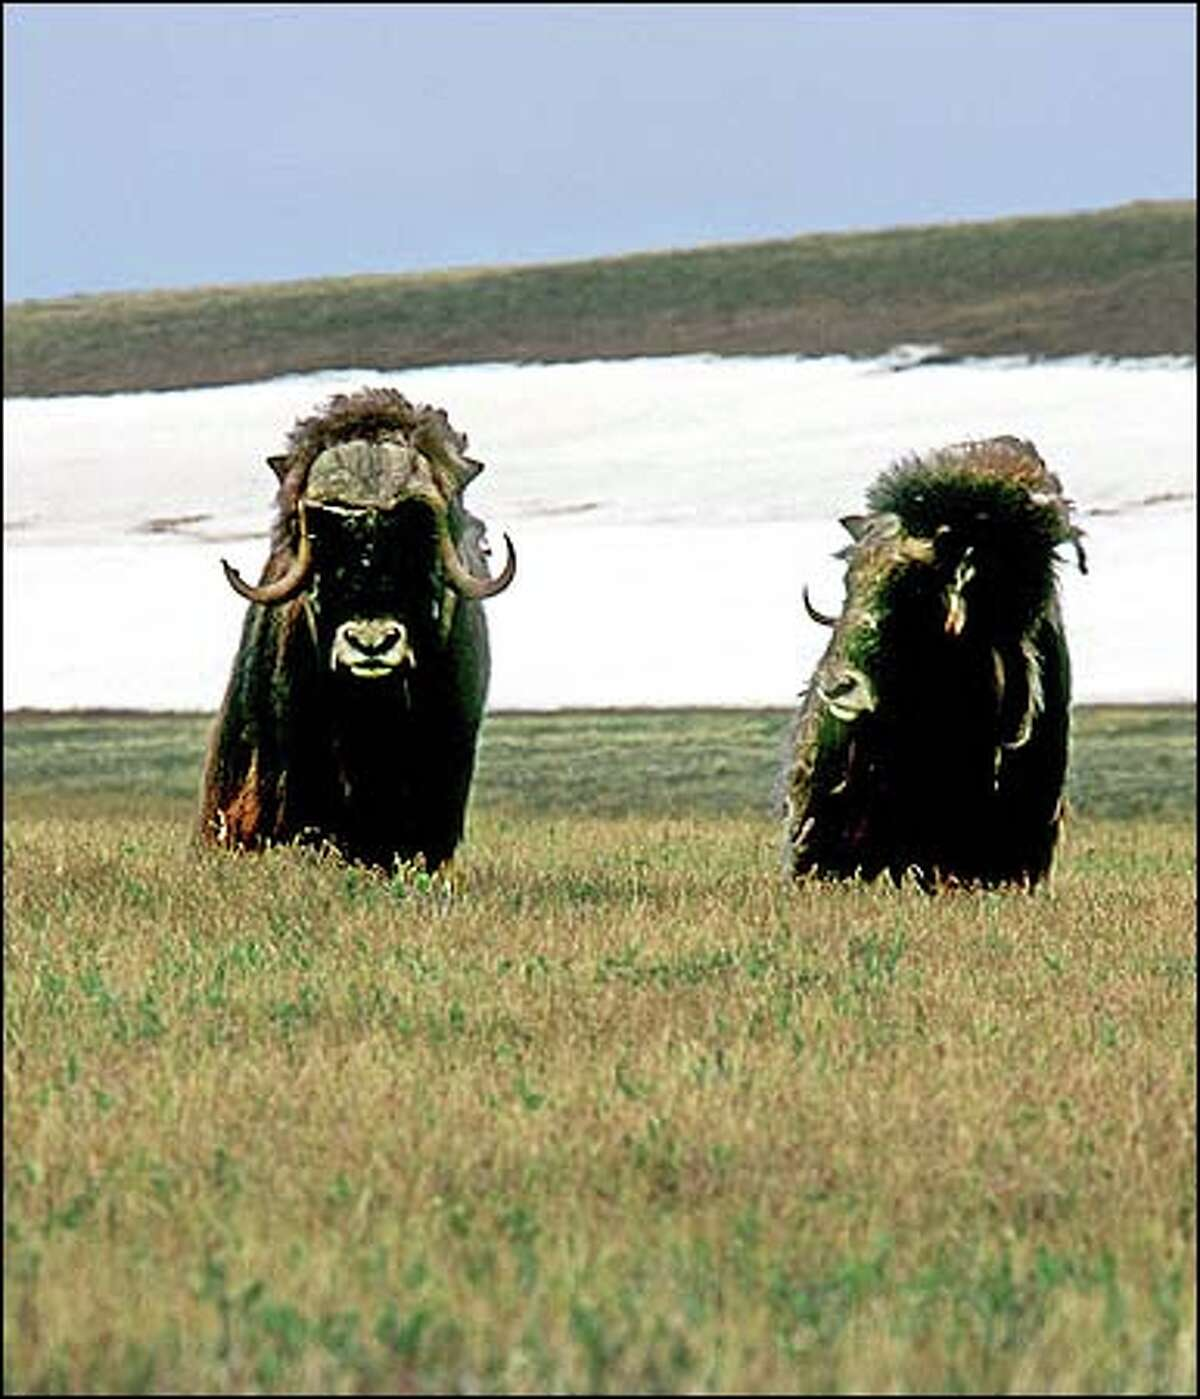 Wild oxen graze in the Arctic National Wildlife Refuge.